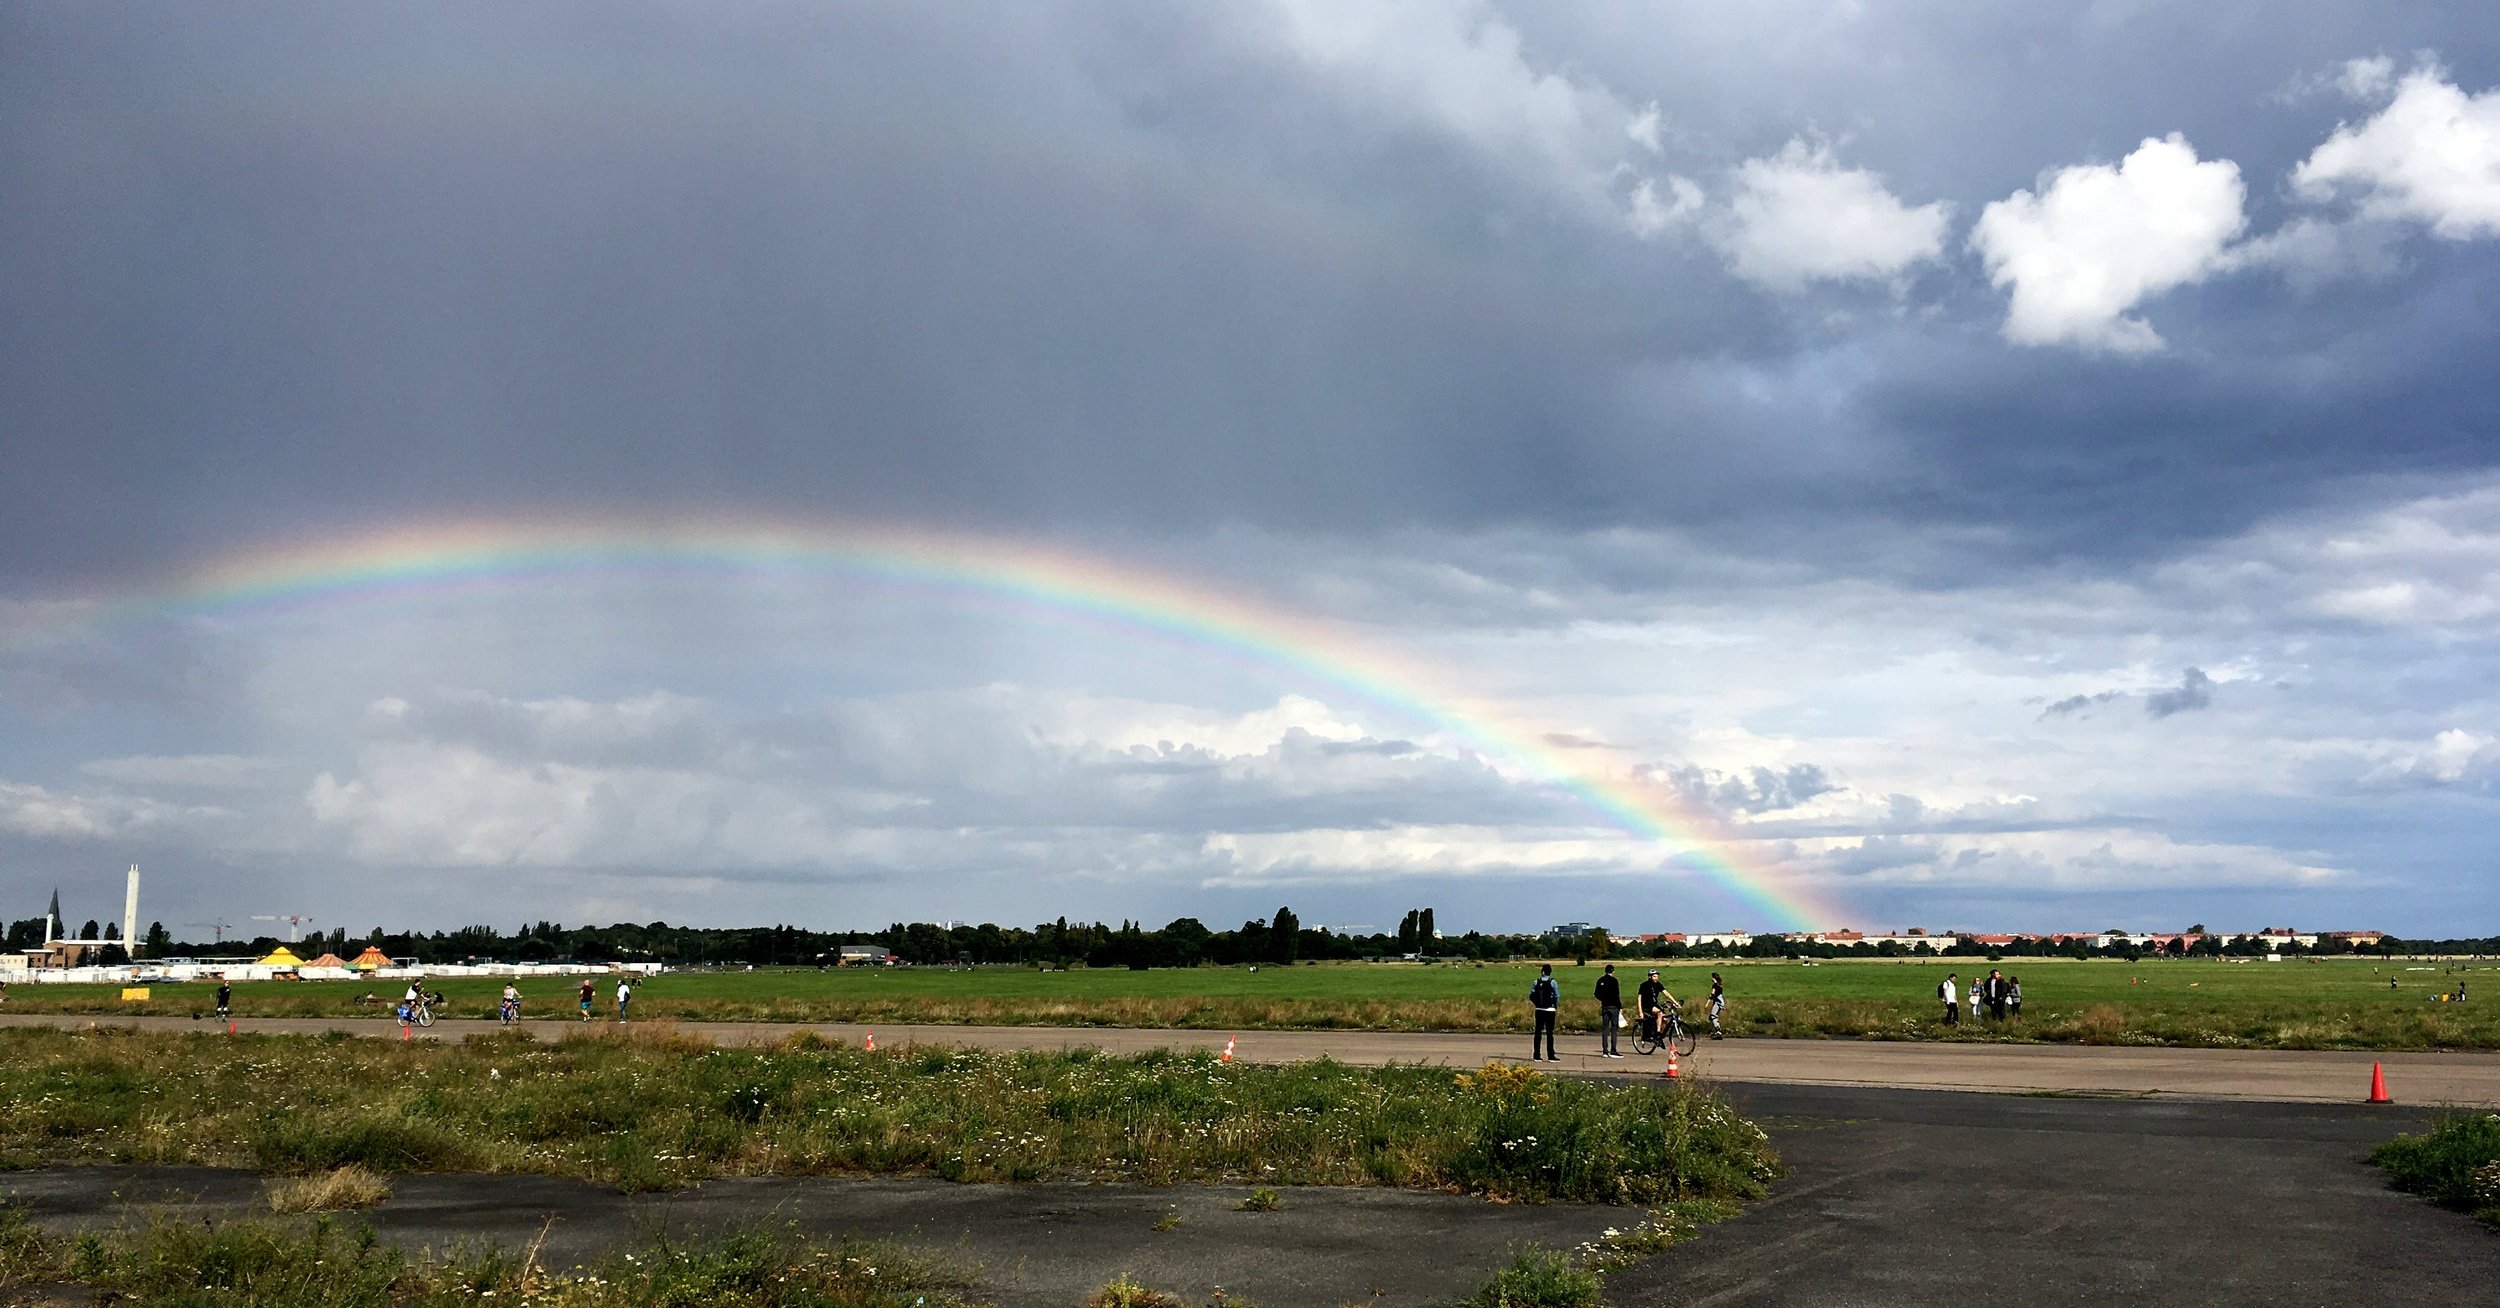 A rainbow appears over Templehofer Feld, the public park at what used to be the famous Tempelhof Airport. Sep. 2, 2017.